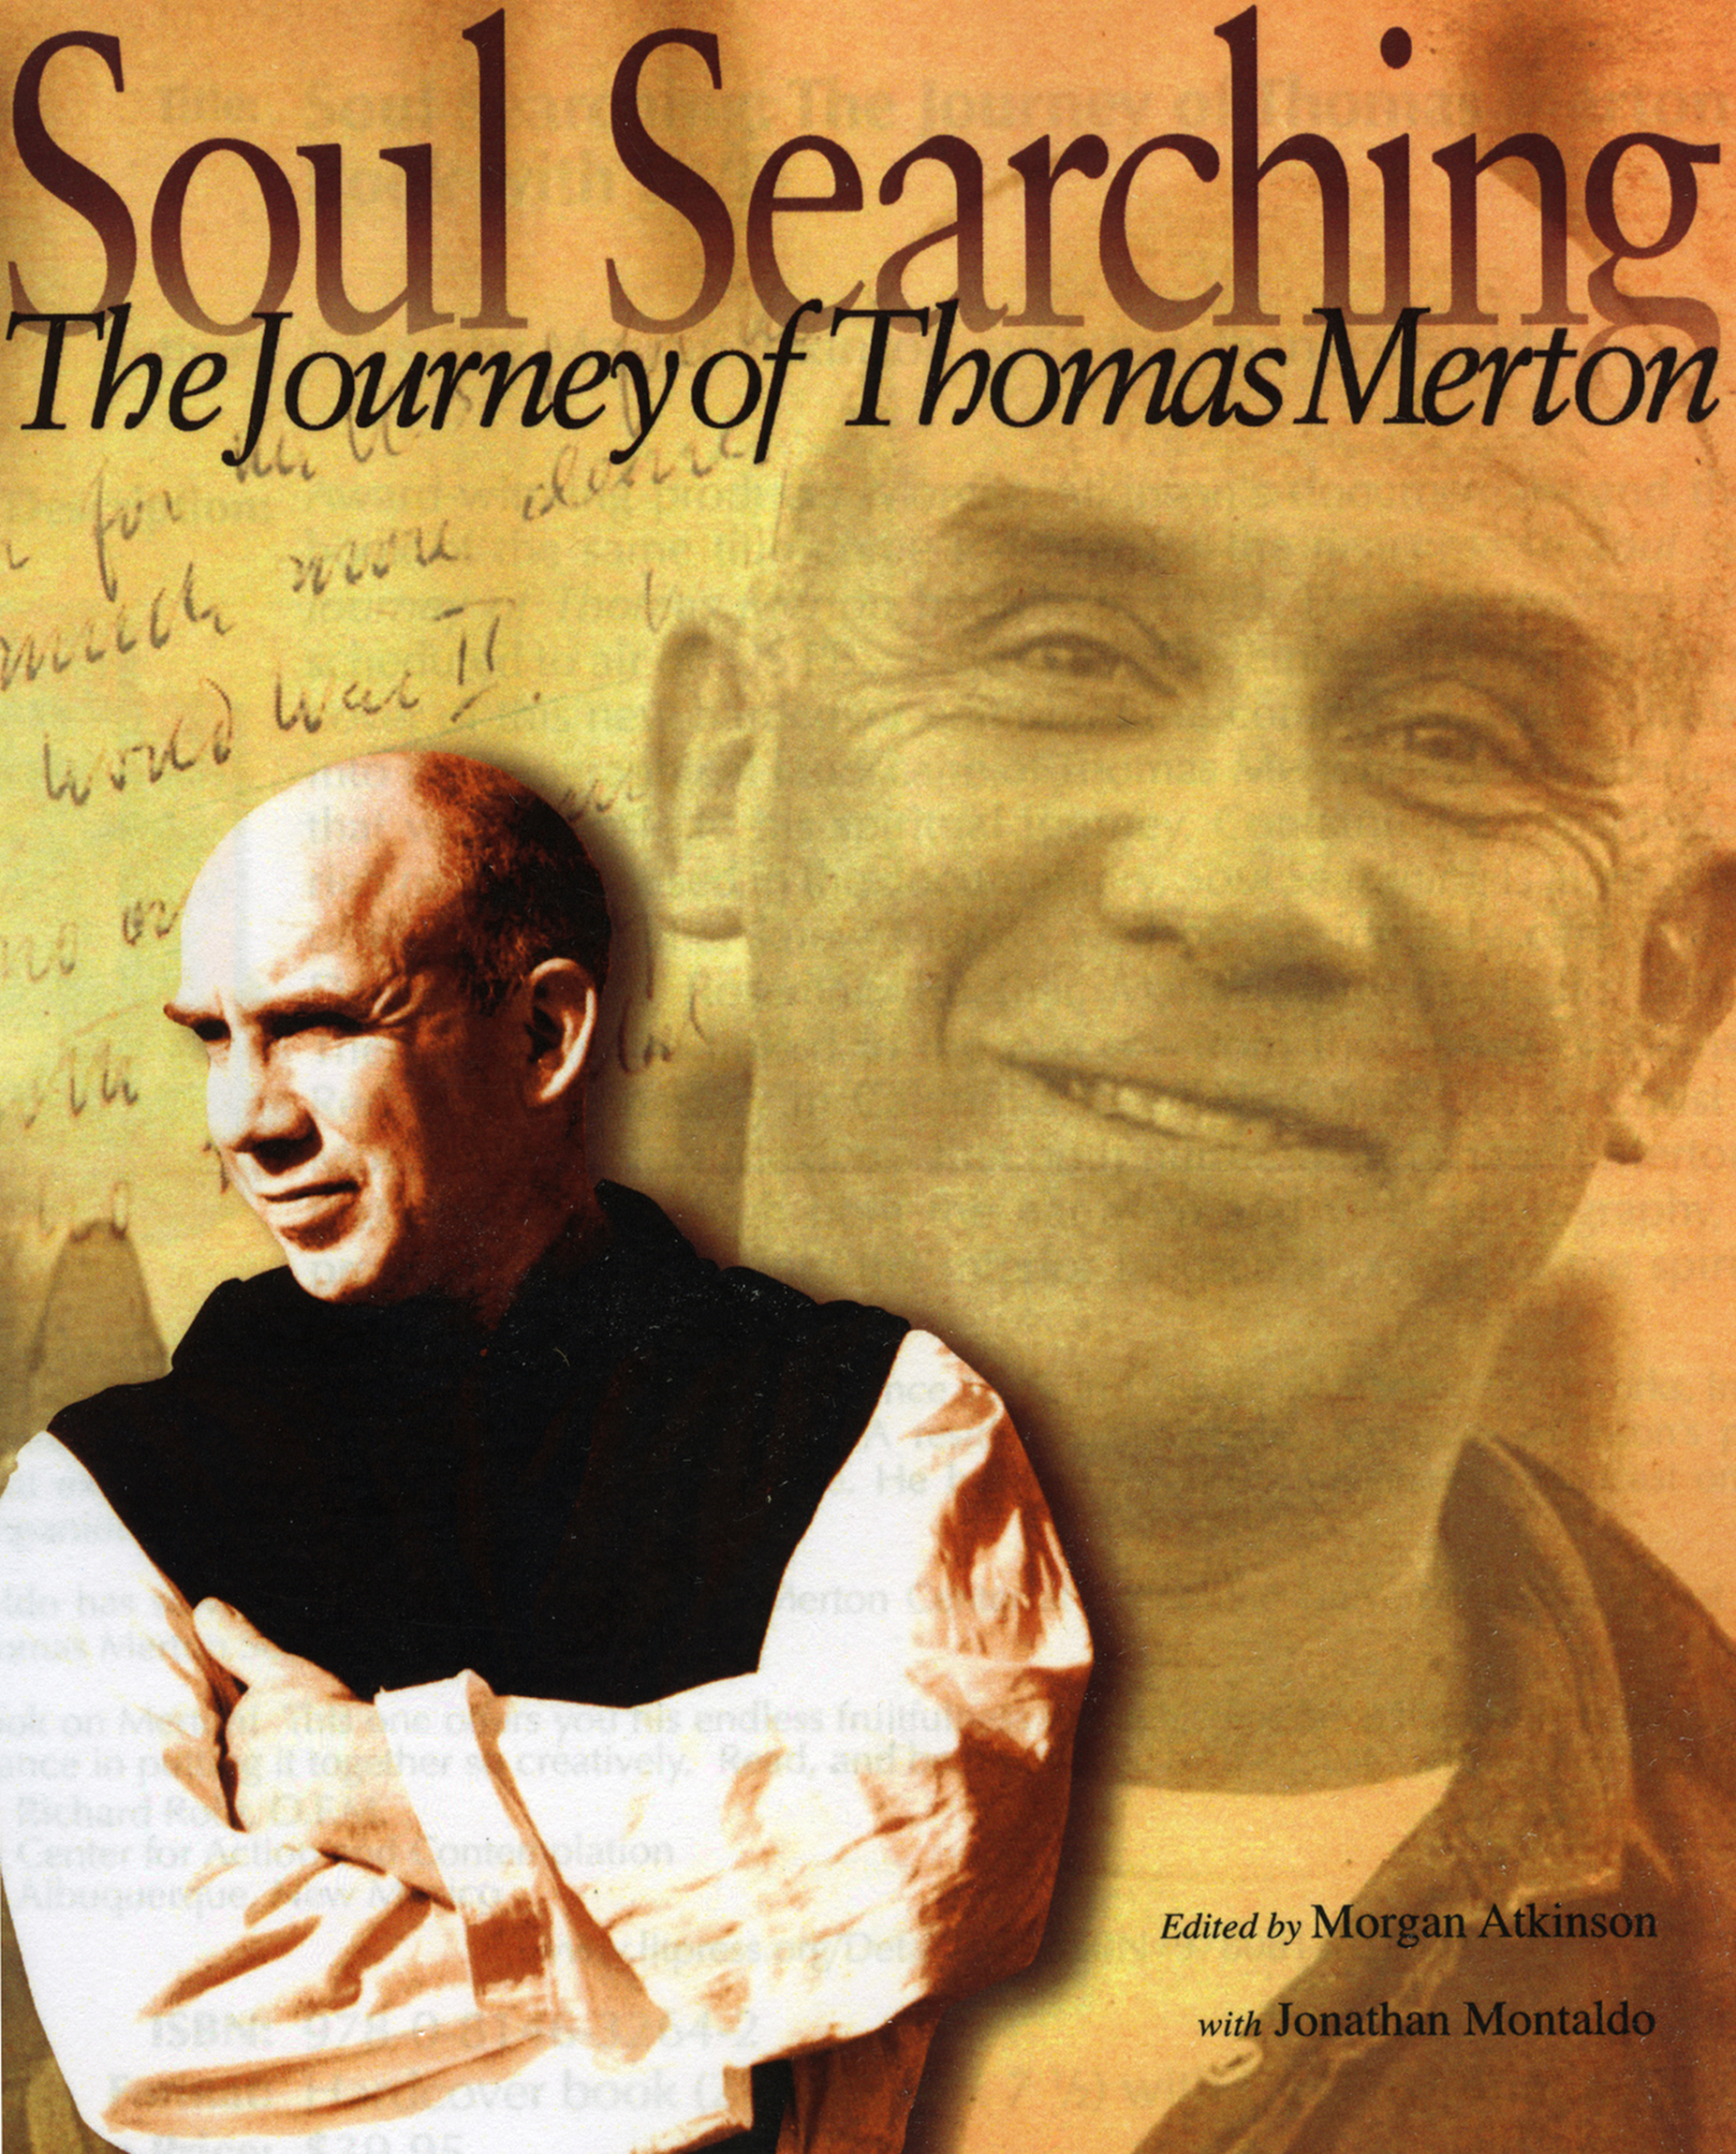 https://cnsblog.files.wordpress.com/2008/12/merton-book.jpg